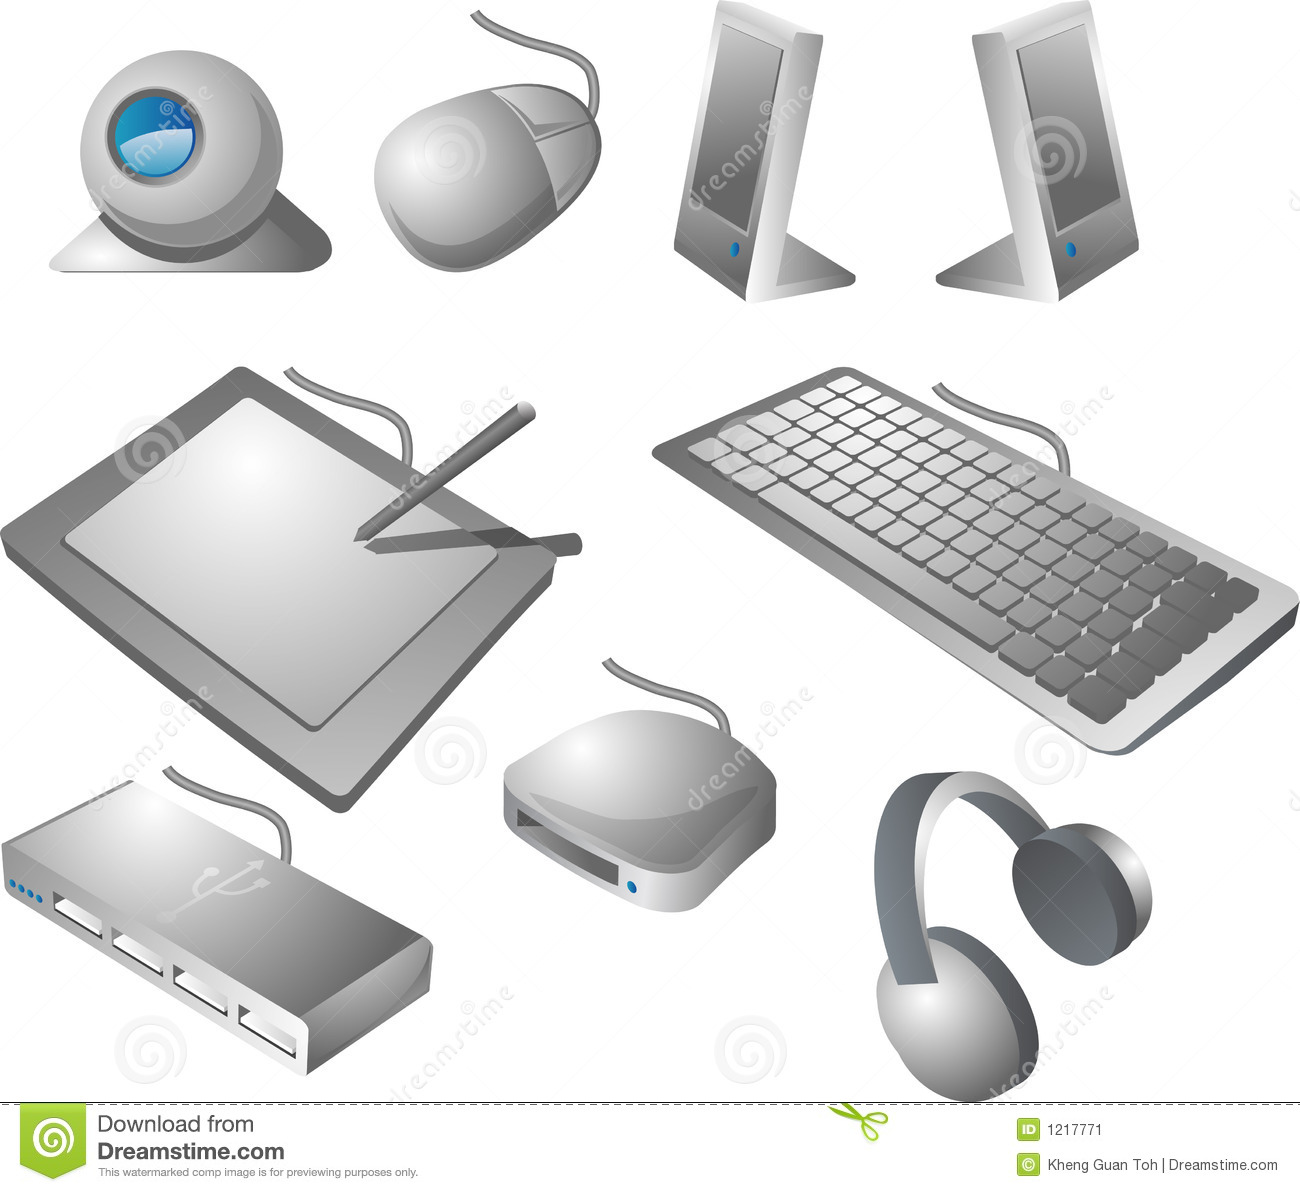 Computer accessories clipart.